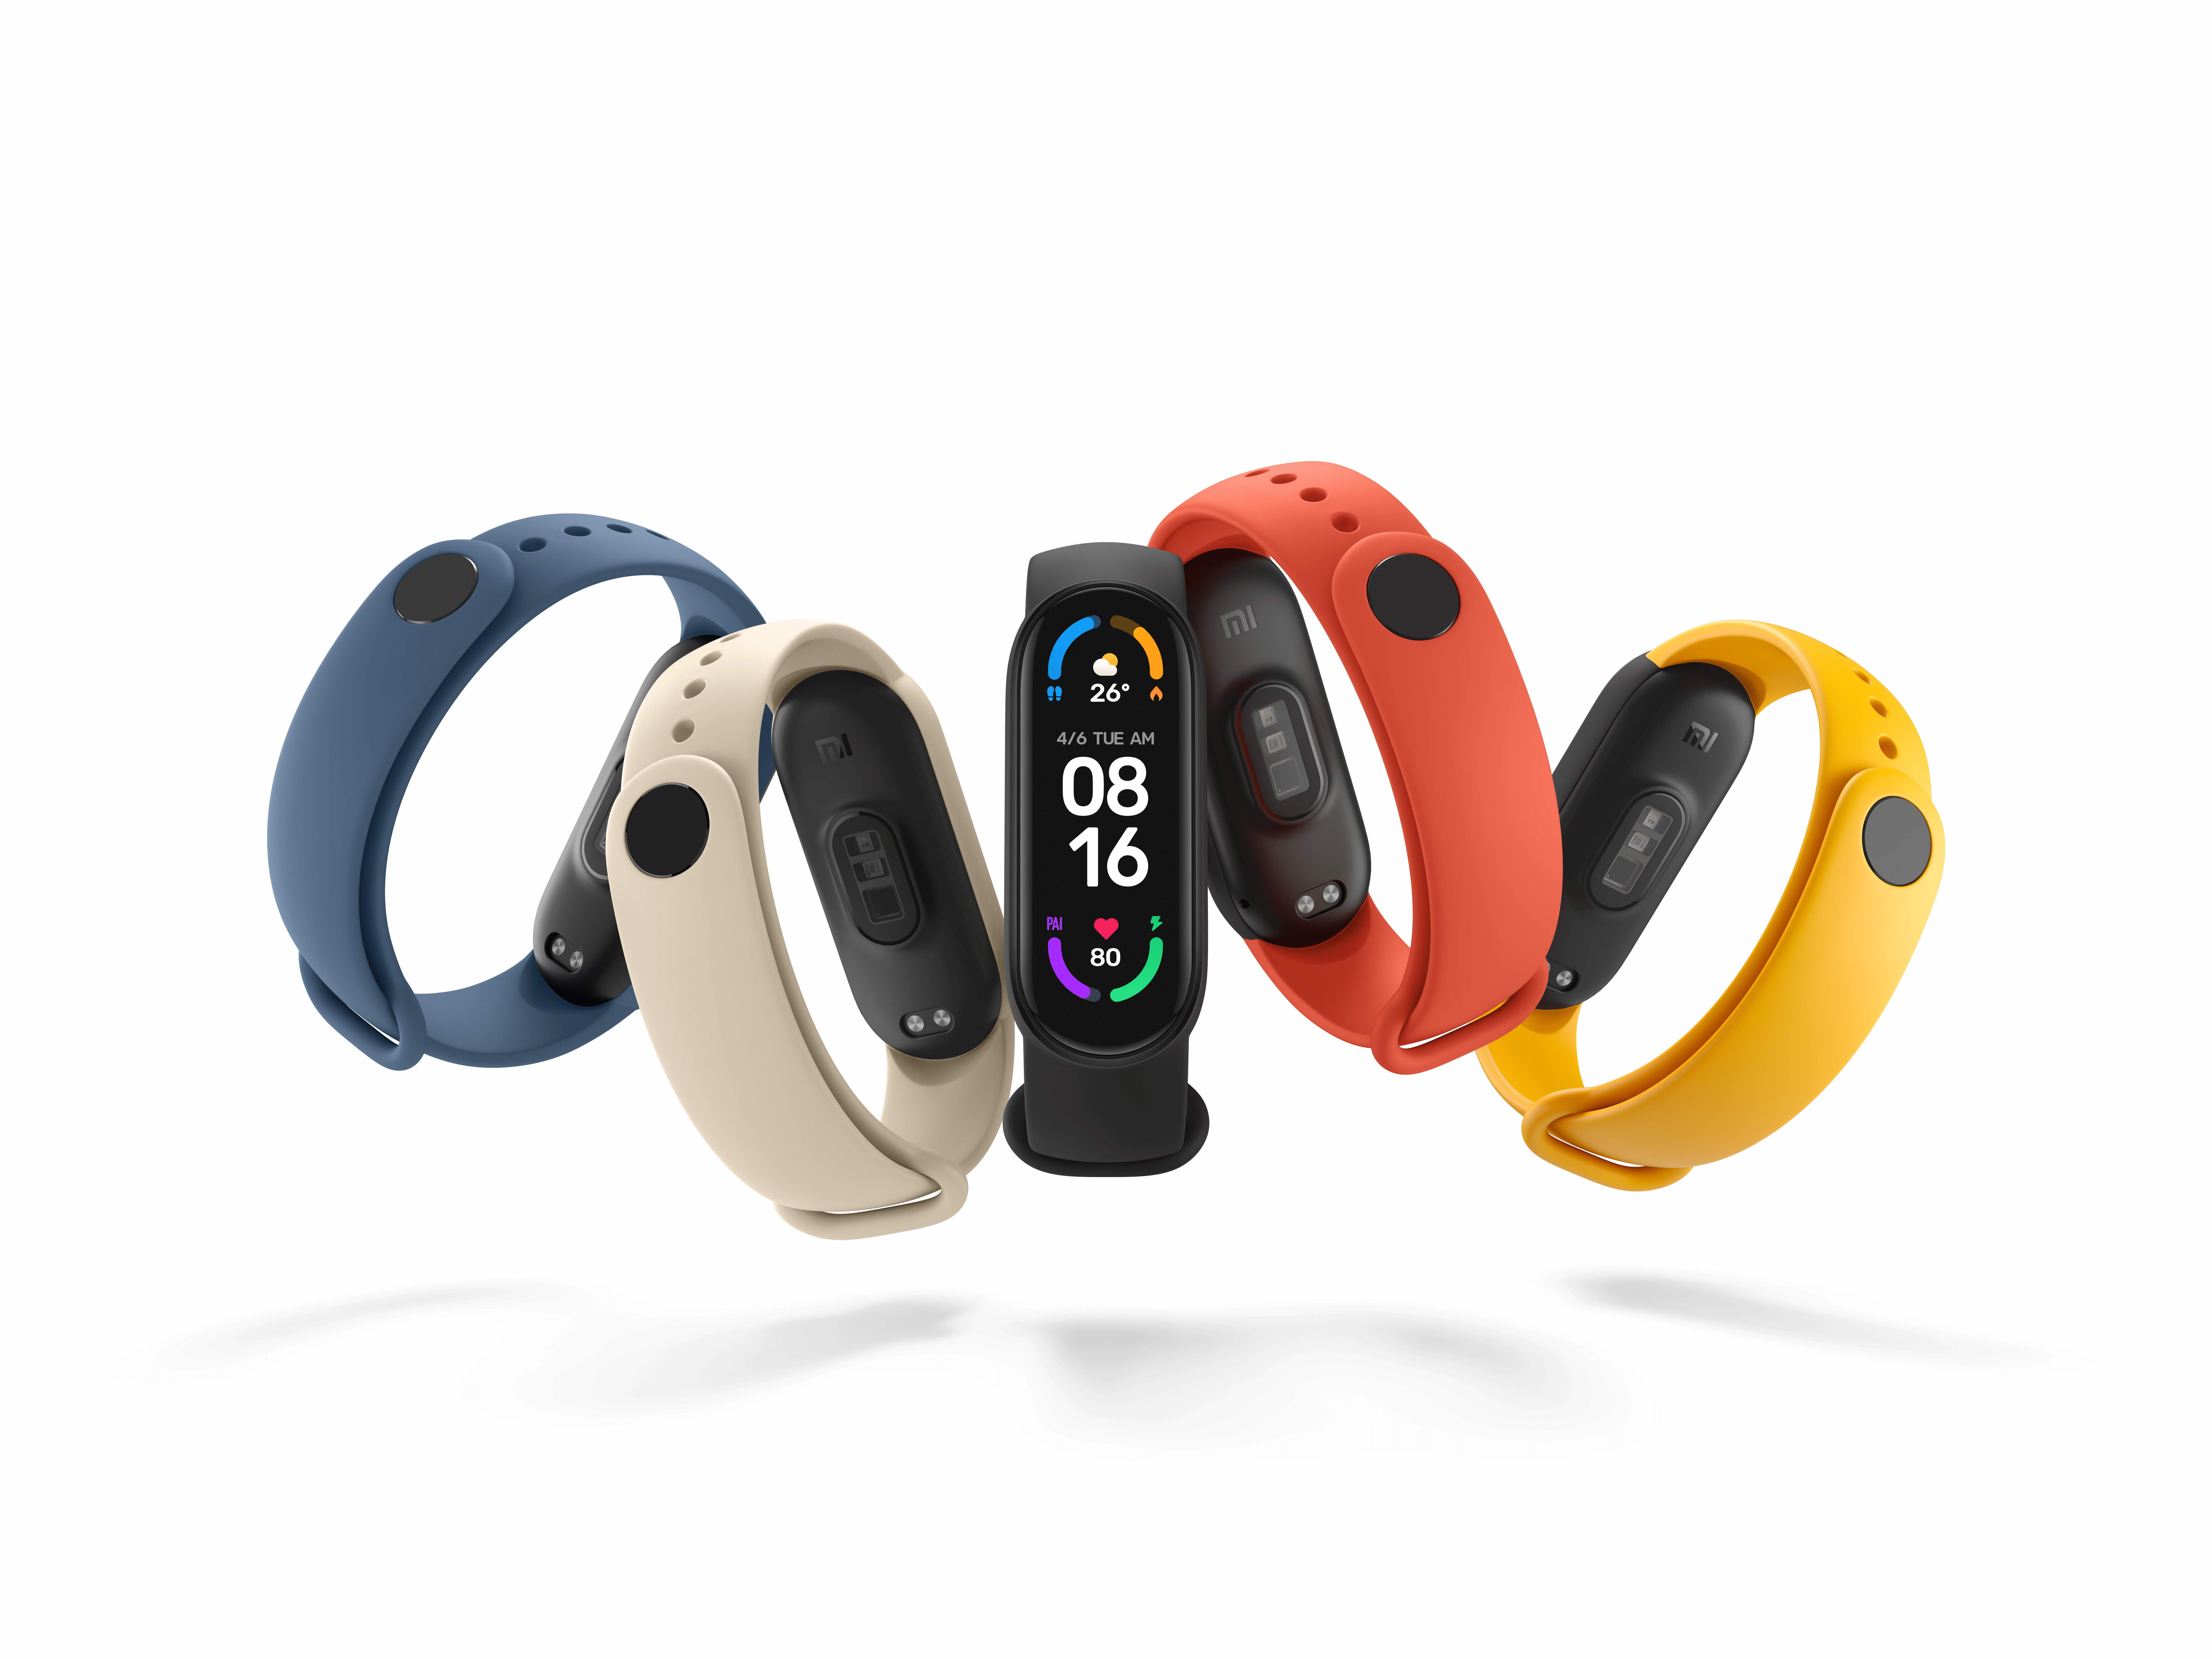 Mi Smart Band 6 with its stripes